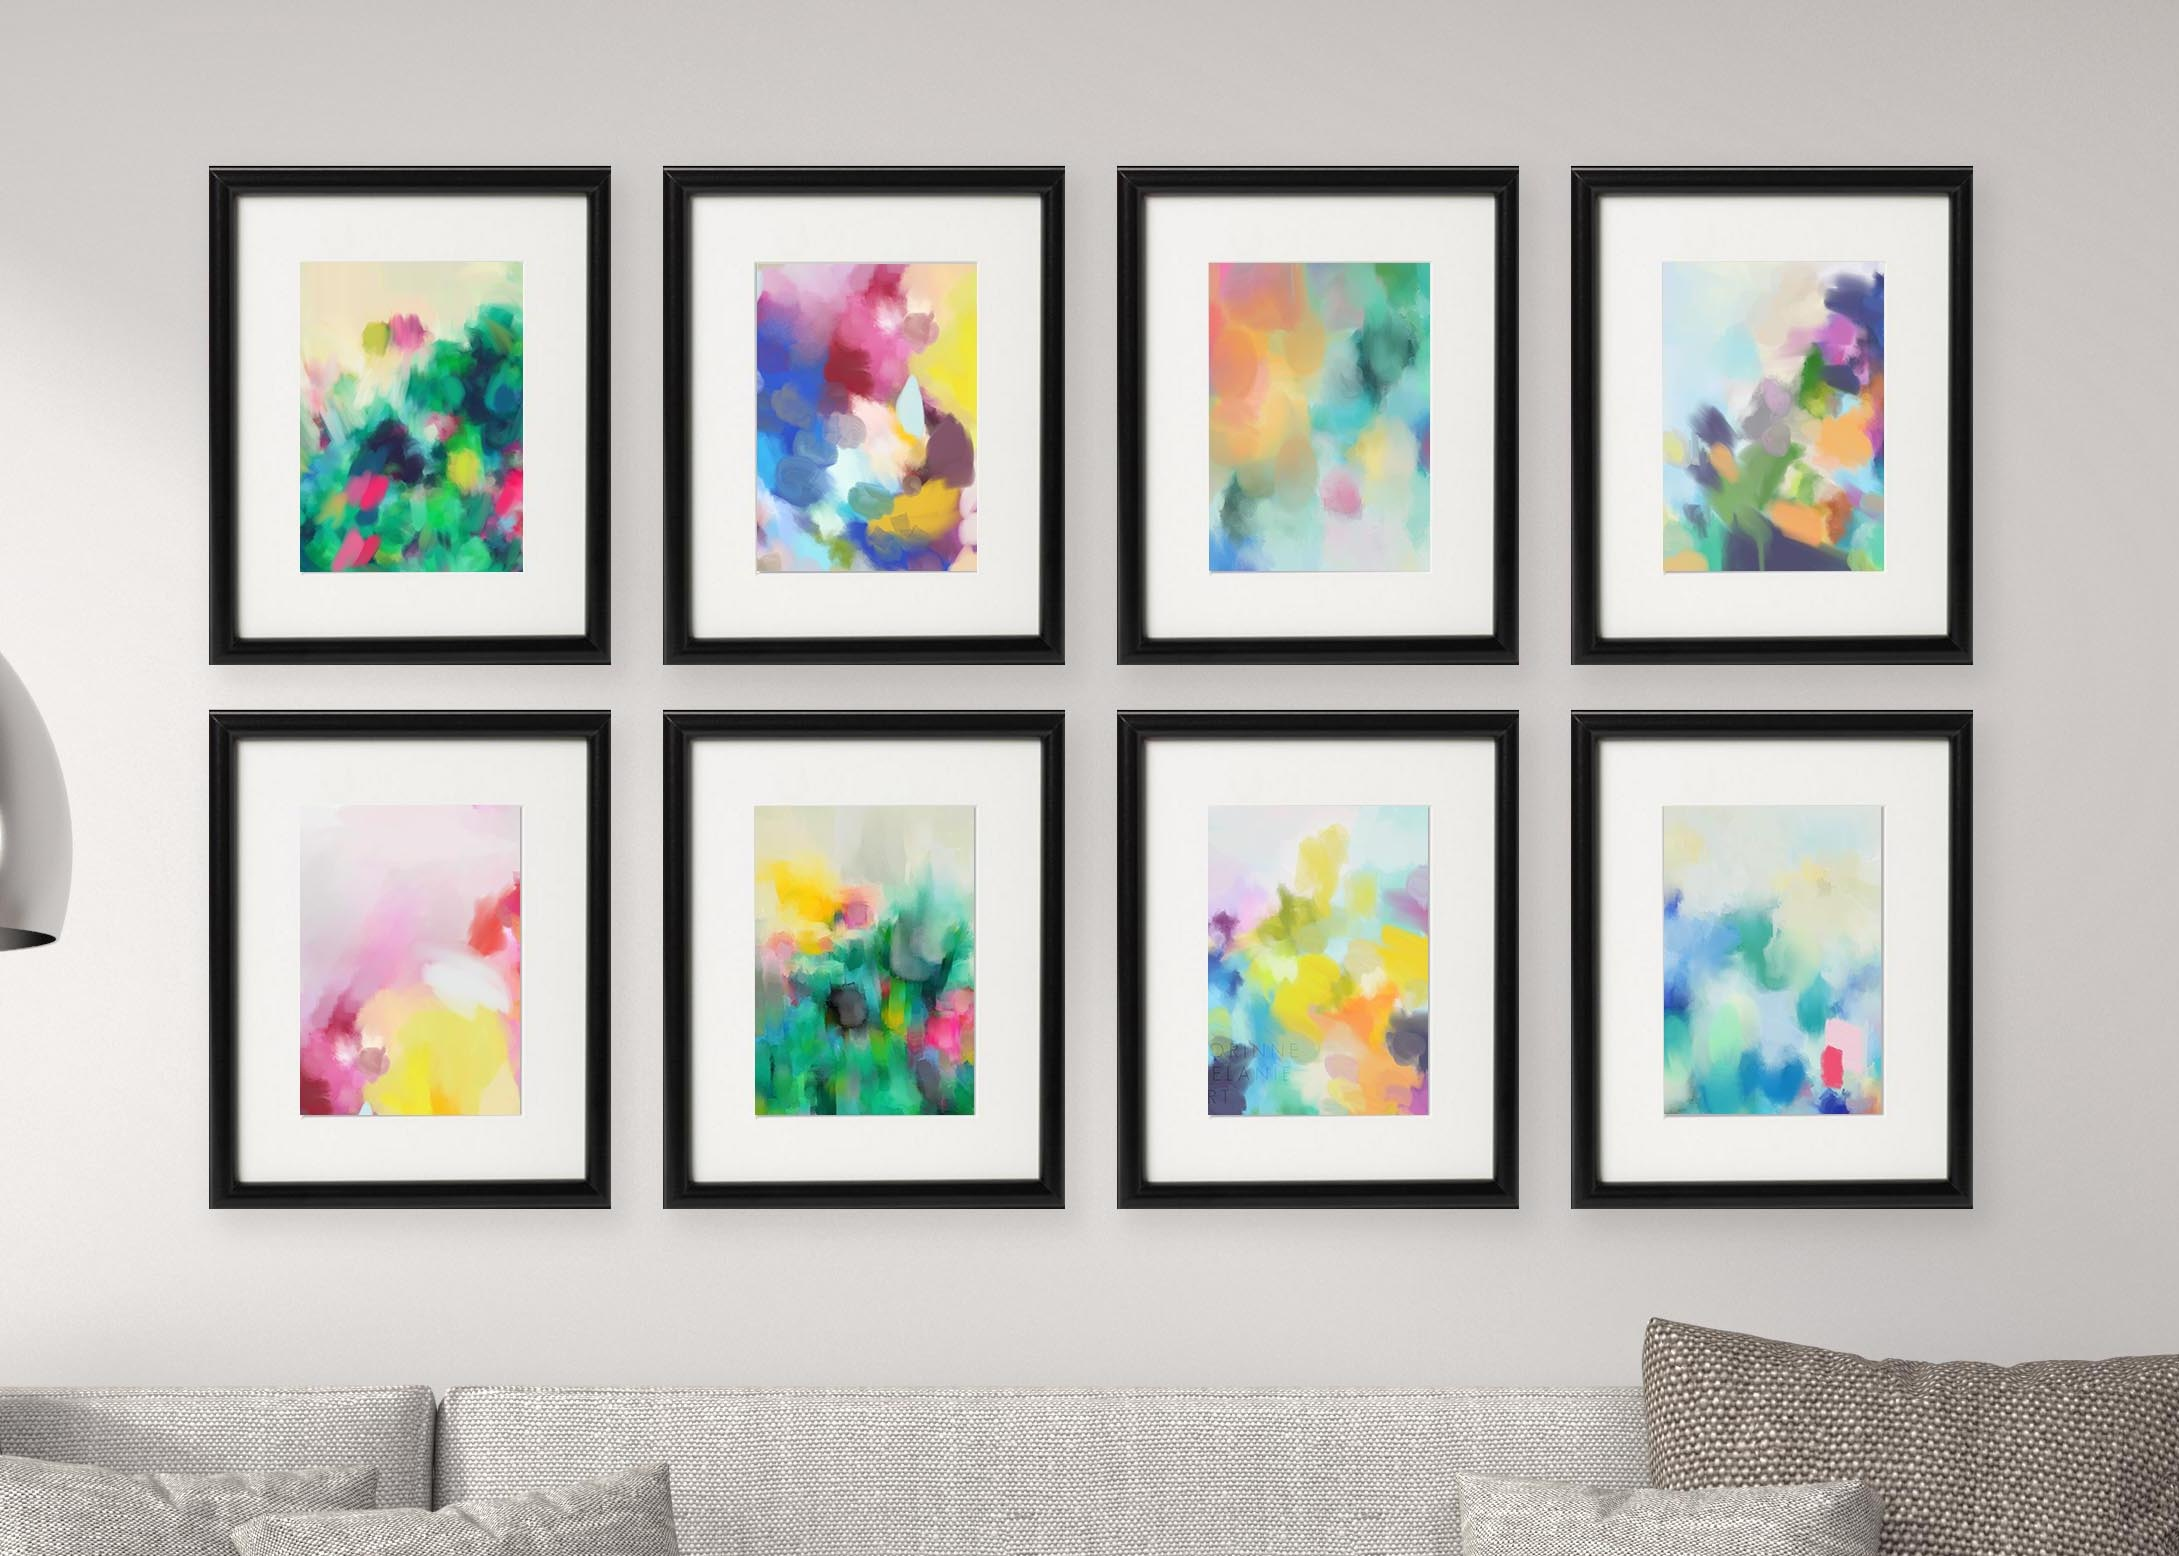 Gallery Wall Free Printables: Download All 8 Colourful, Abstract Art - Free Printable Artwork To Frame